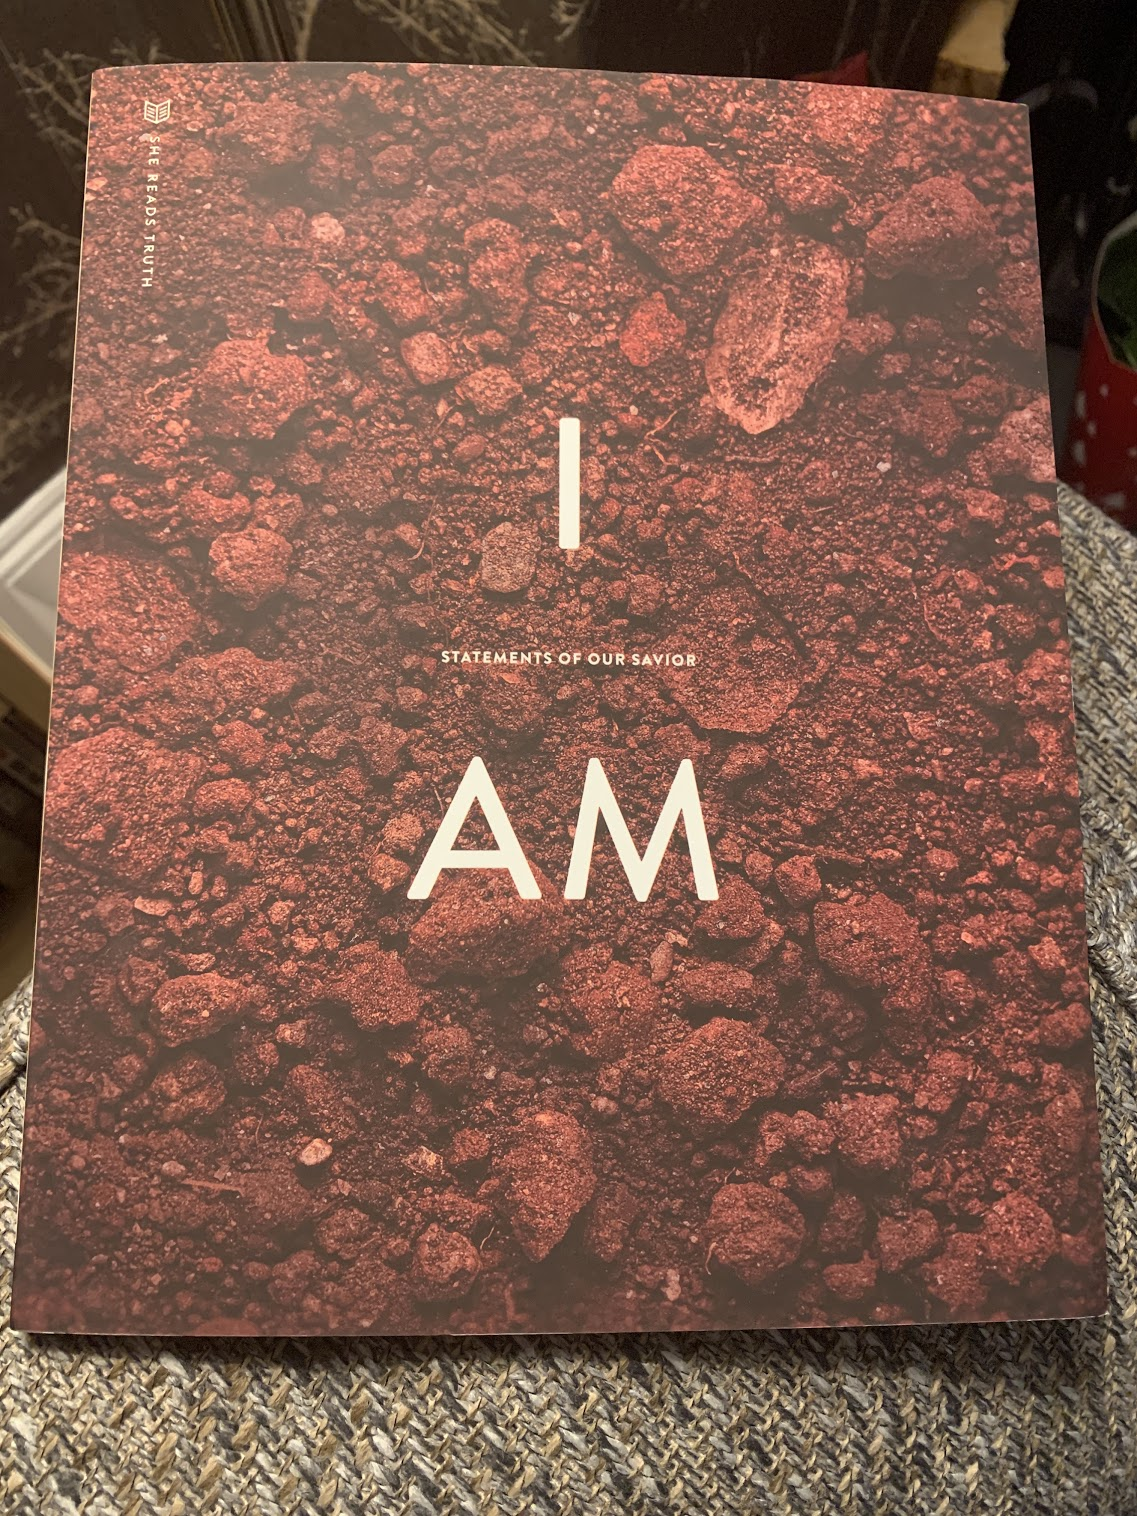 She Reads Truth - I Am